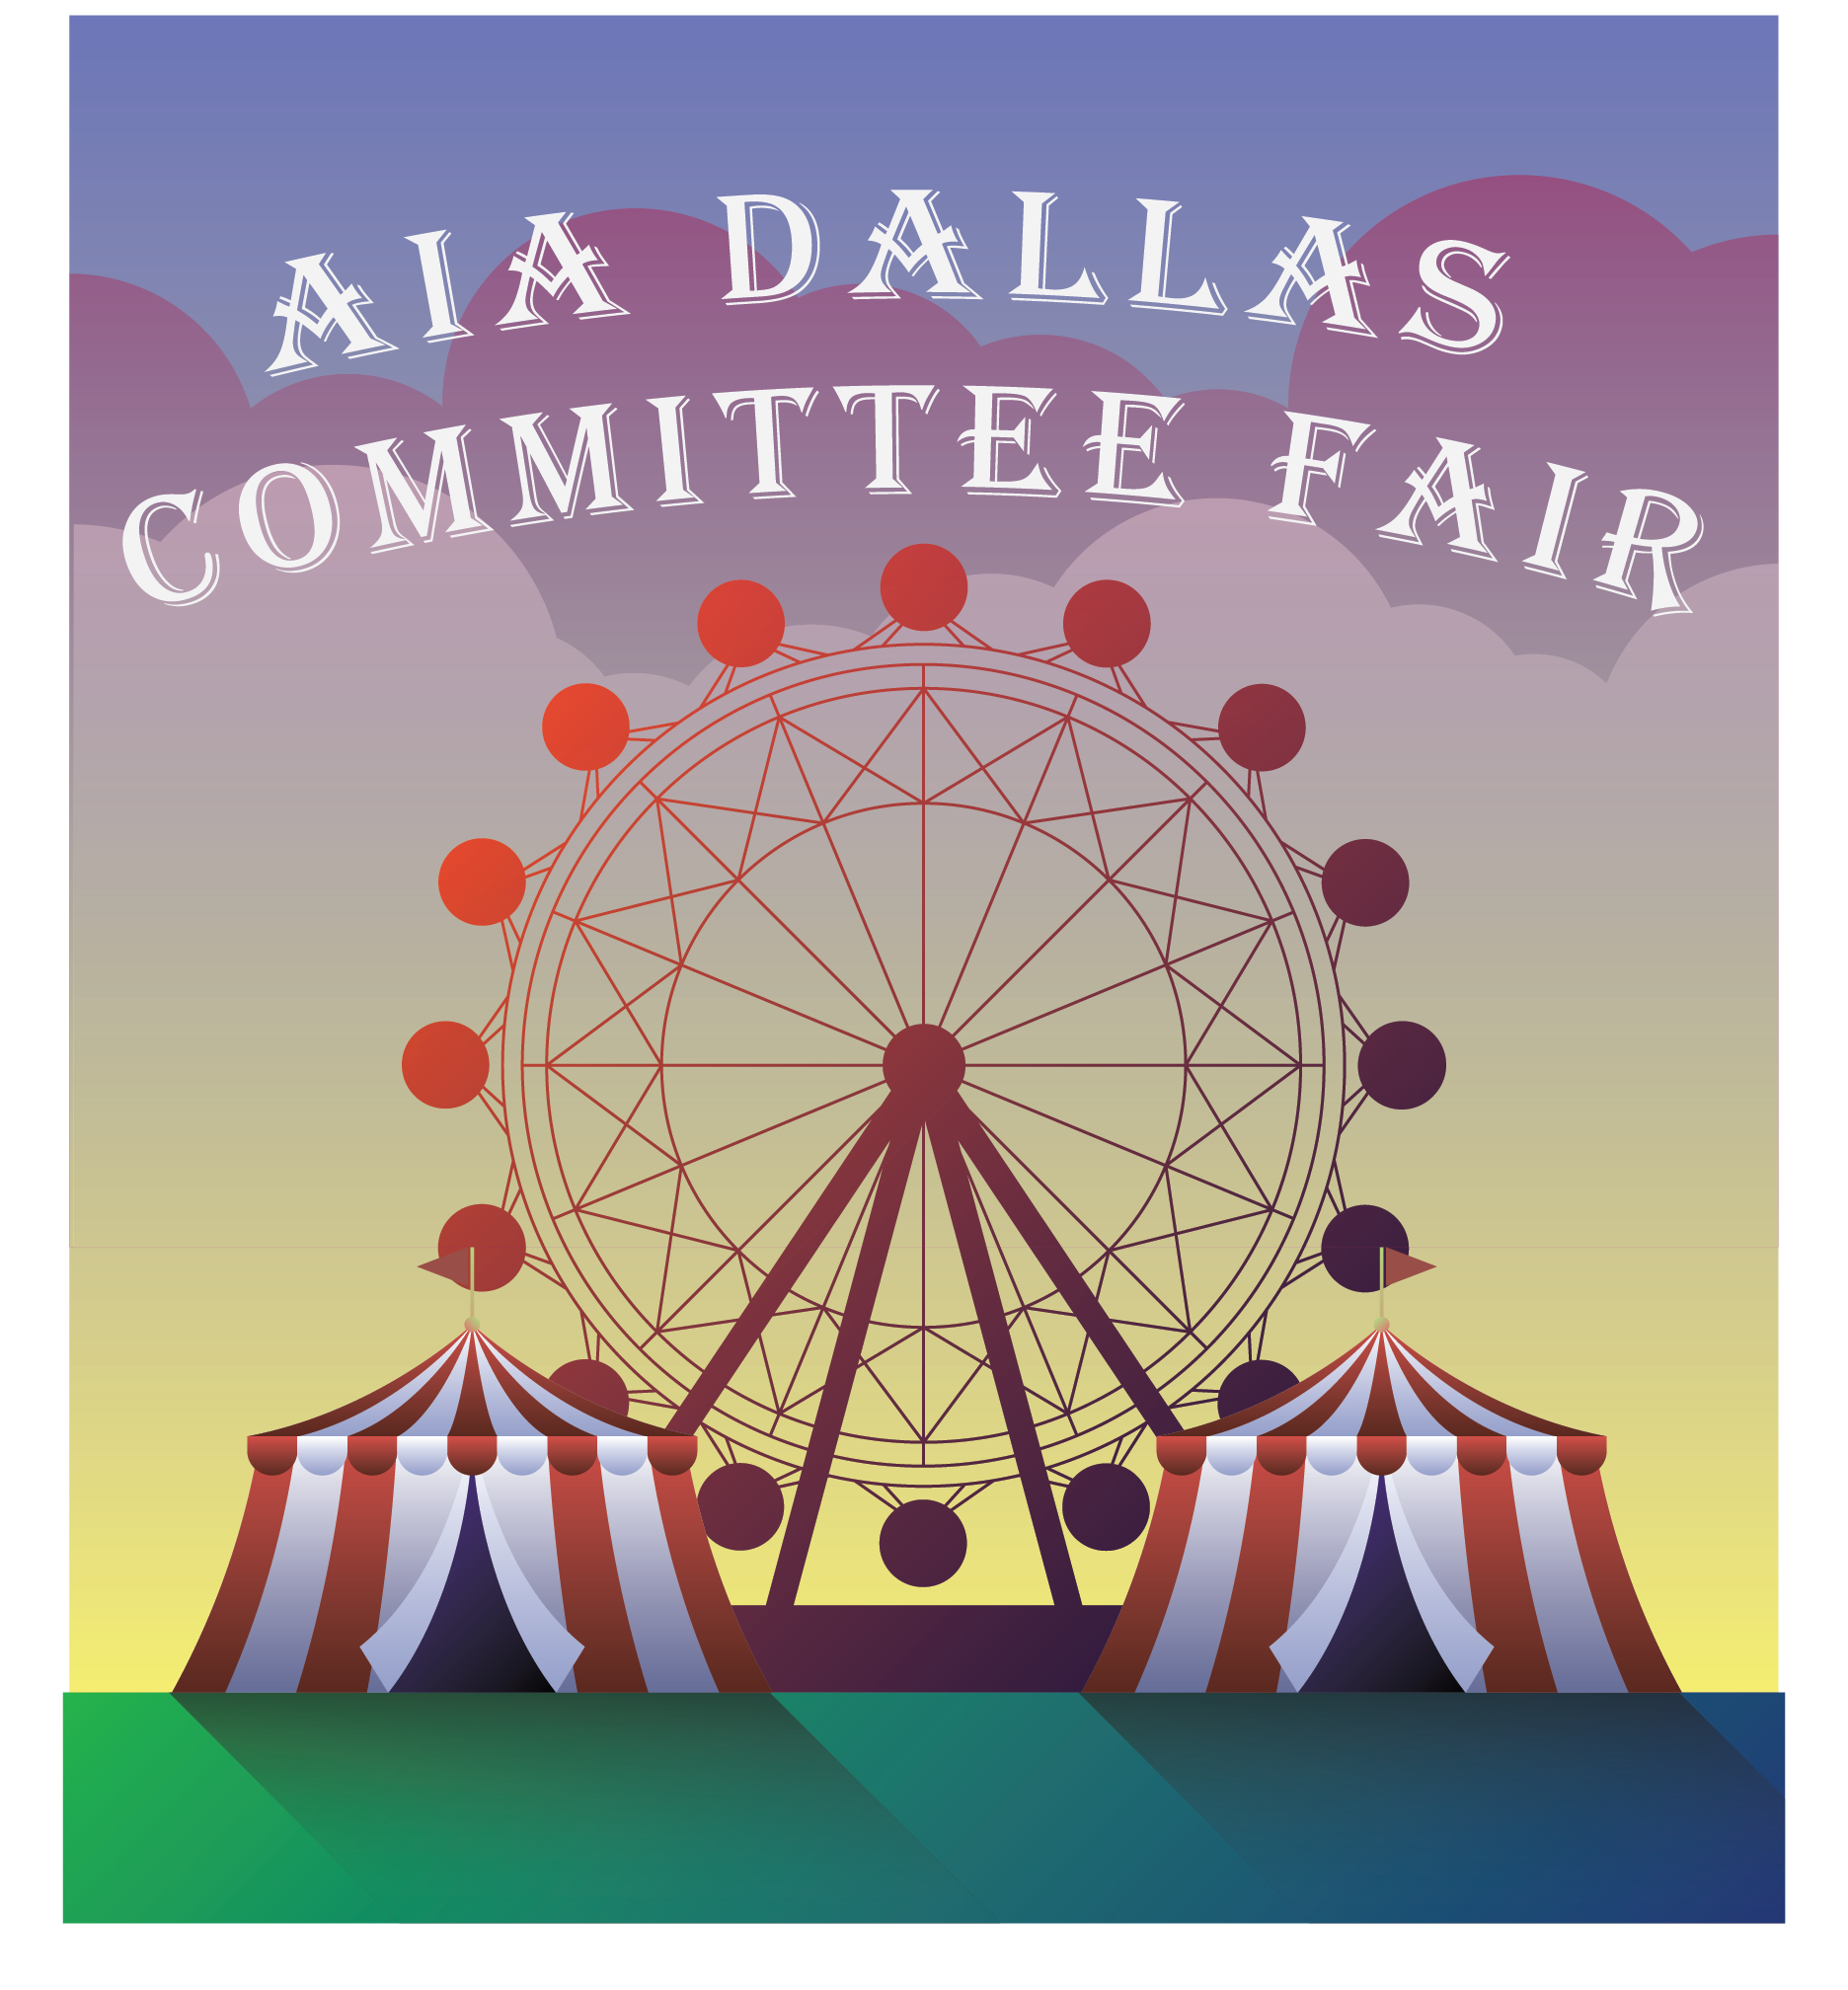 AIA Dallas Committee Fair